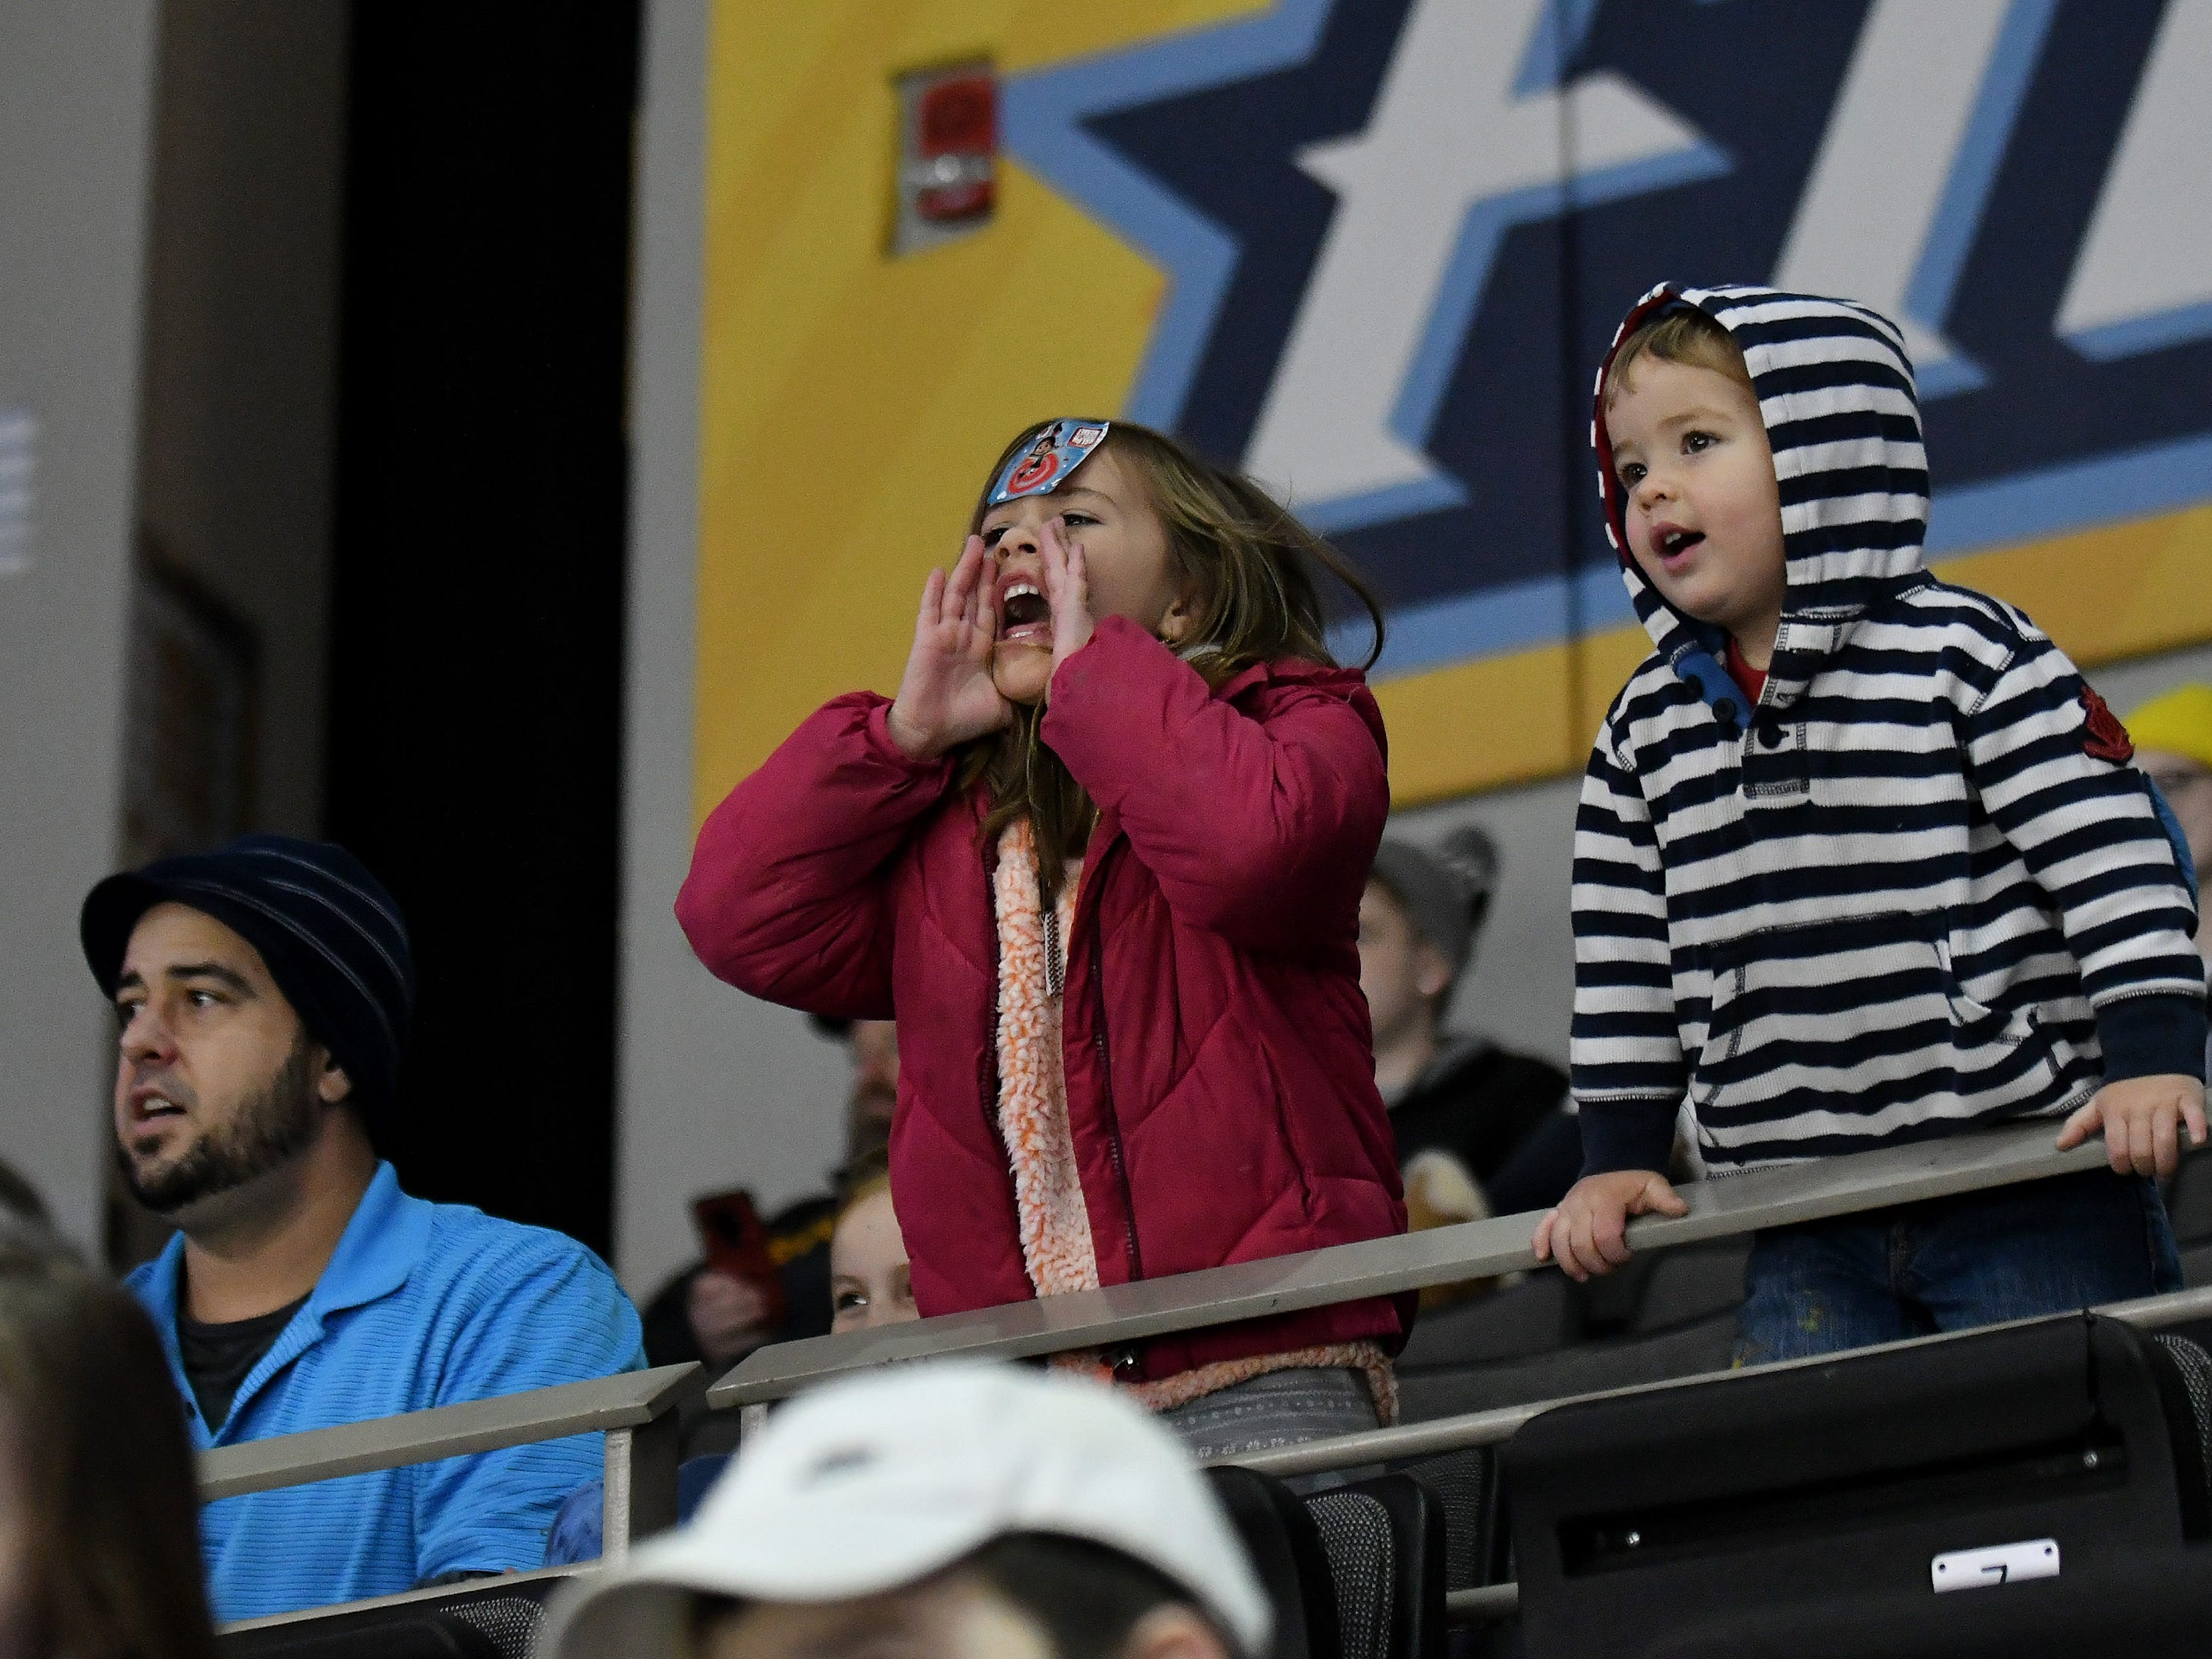 From left, Leila Okenka, 5, center, cheers for the Walleye next to her brother, Kahlai Okenka, 2, right, and father, Dan Okenka, left, in the first period.